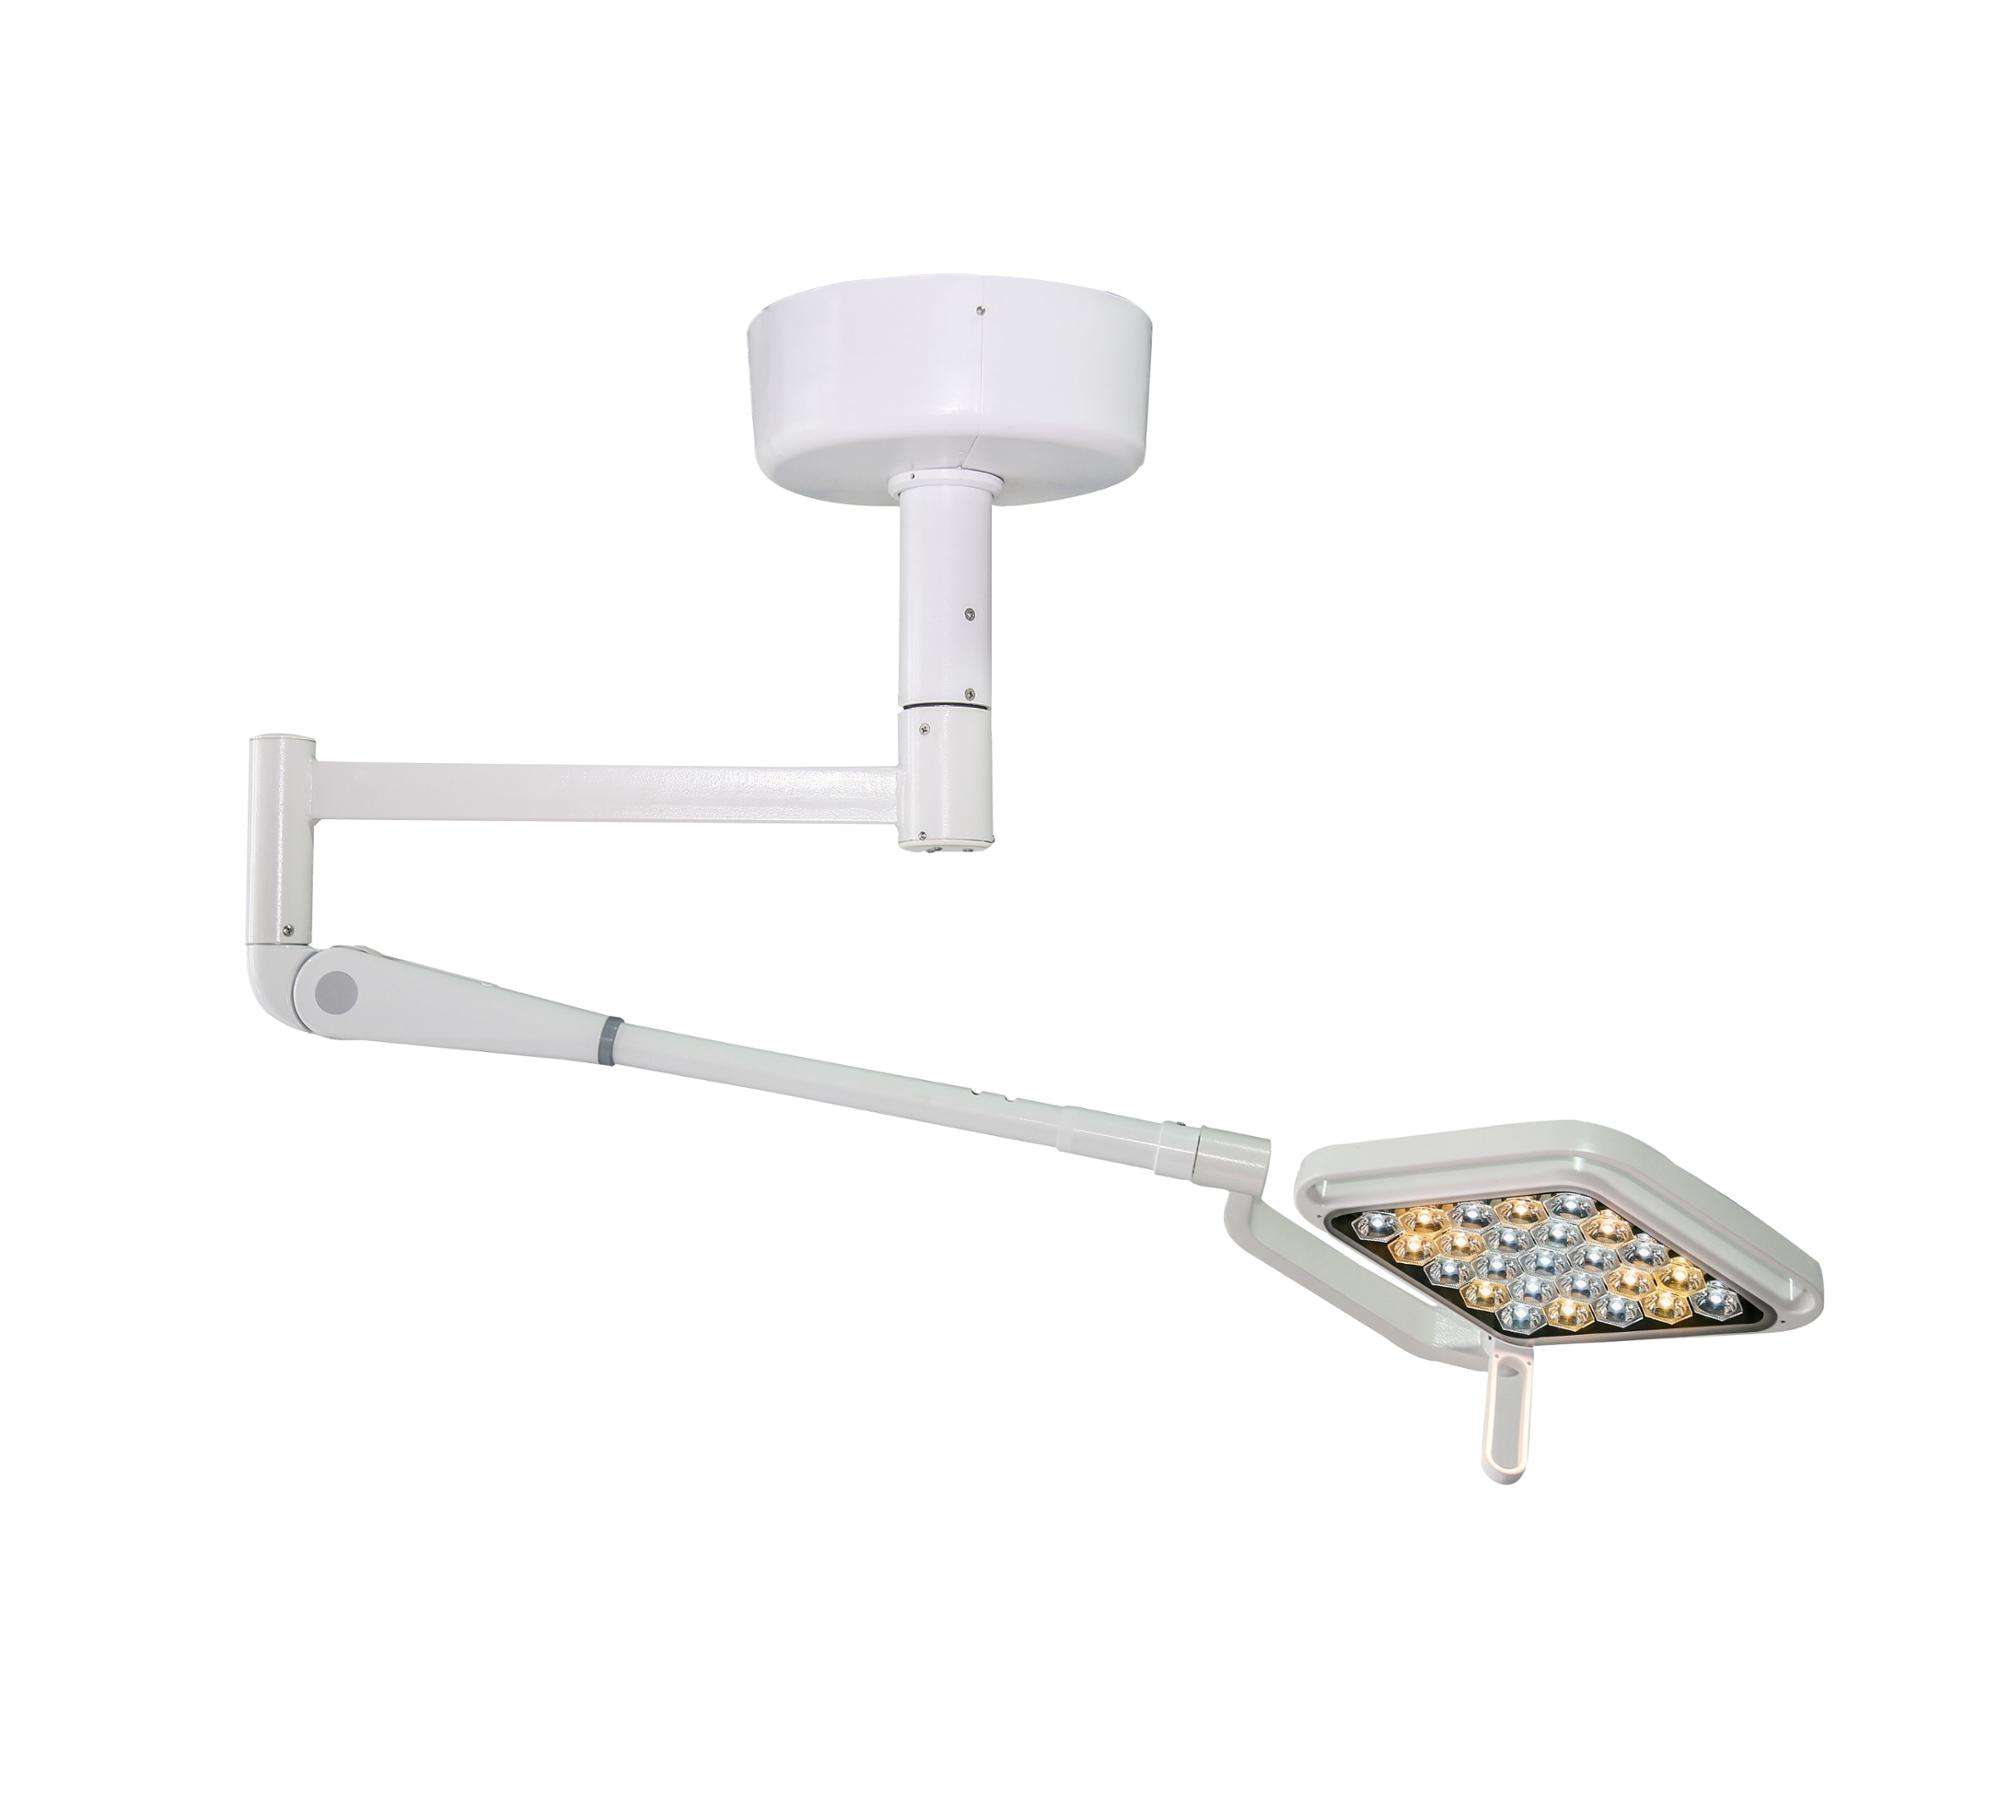 HF-L25C Examination Lamp and Surgery Lamp Adjust Color Temperature